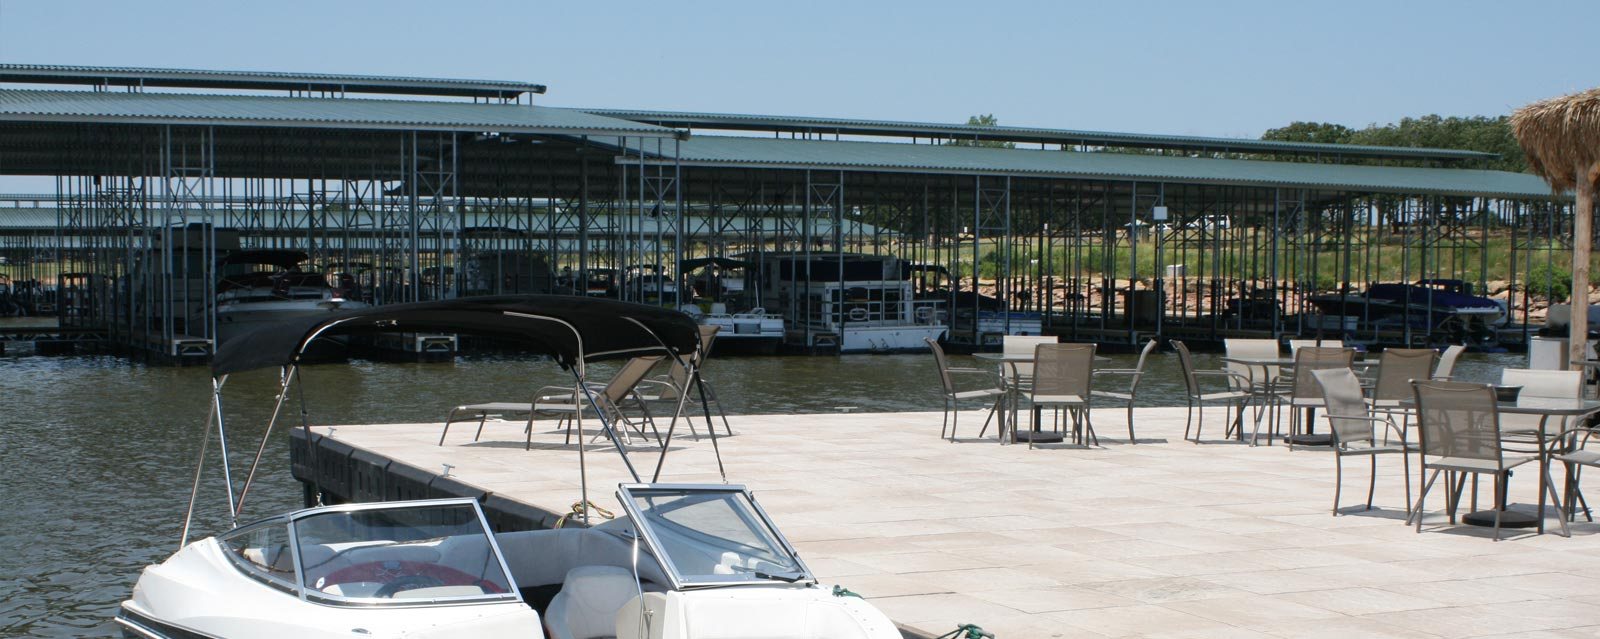 Galvanized Steel Floating Dock System